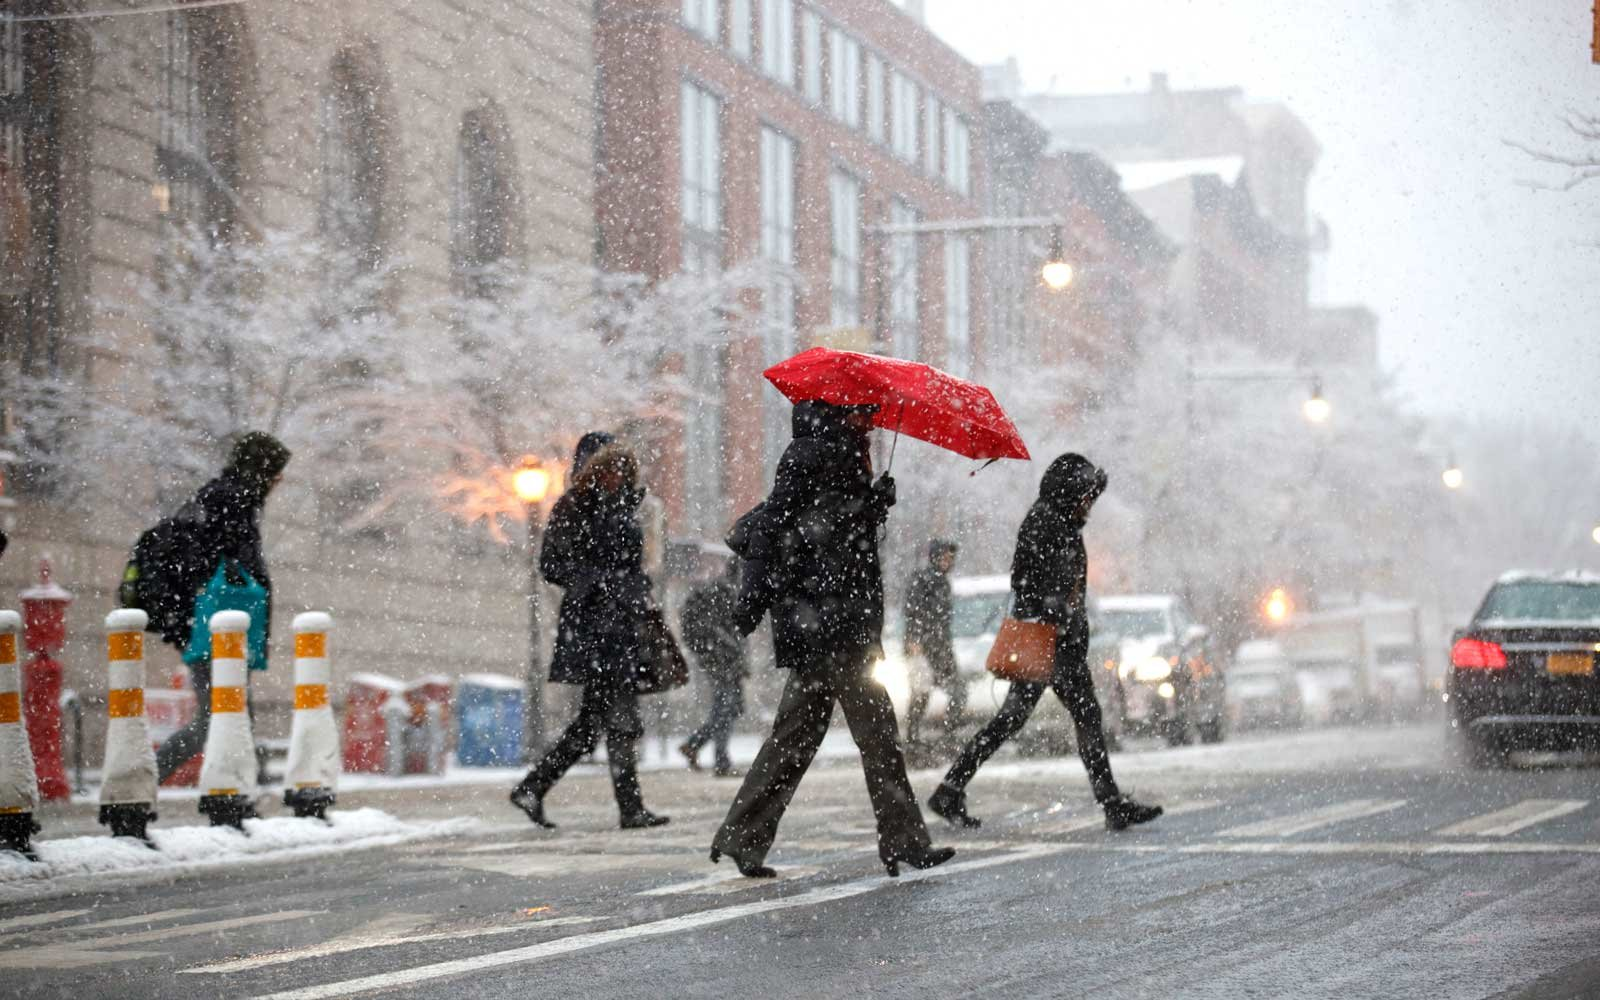 Pedestrians cross the street in the snow during the morning rush hour on Atlantic Avenue, April 2, 2018 in the Brooklyn borough of New York City.